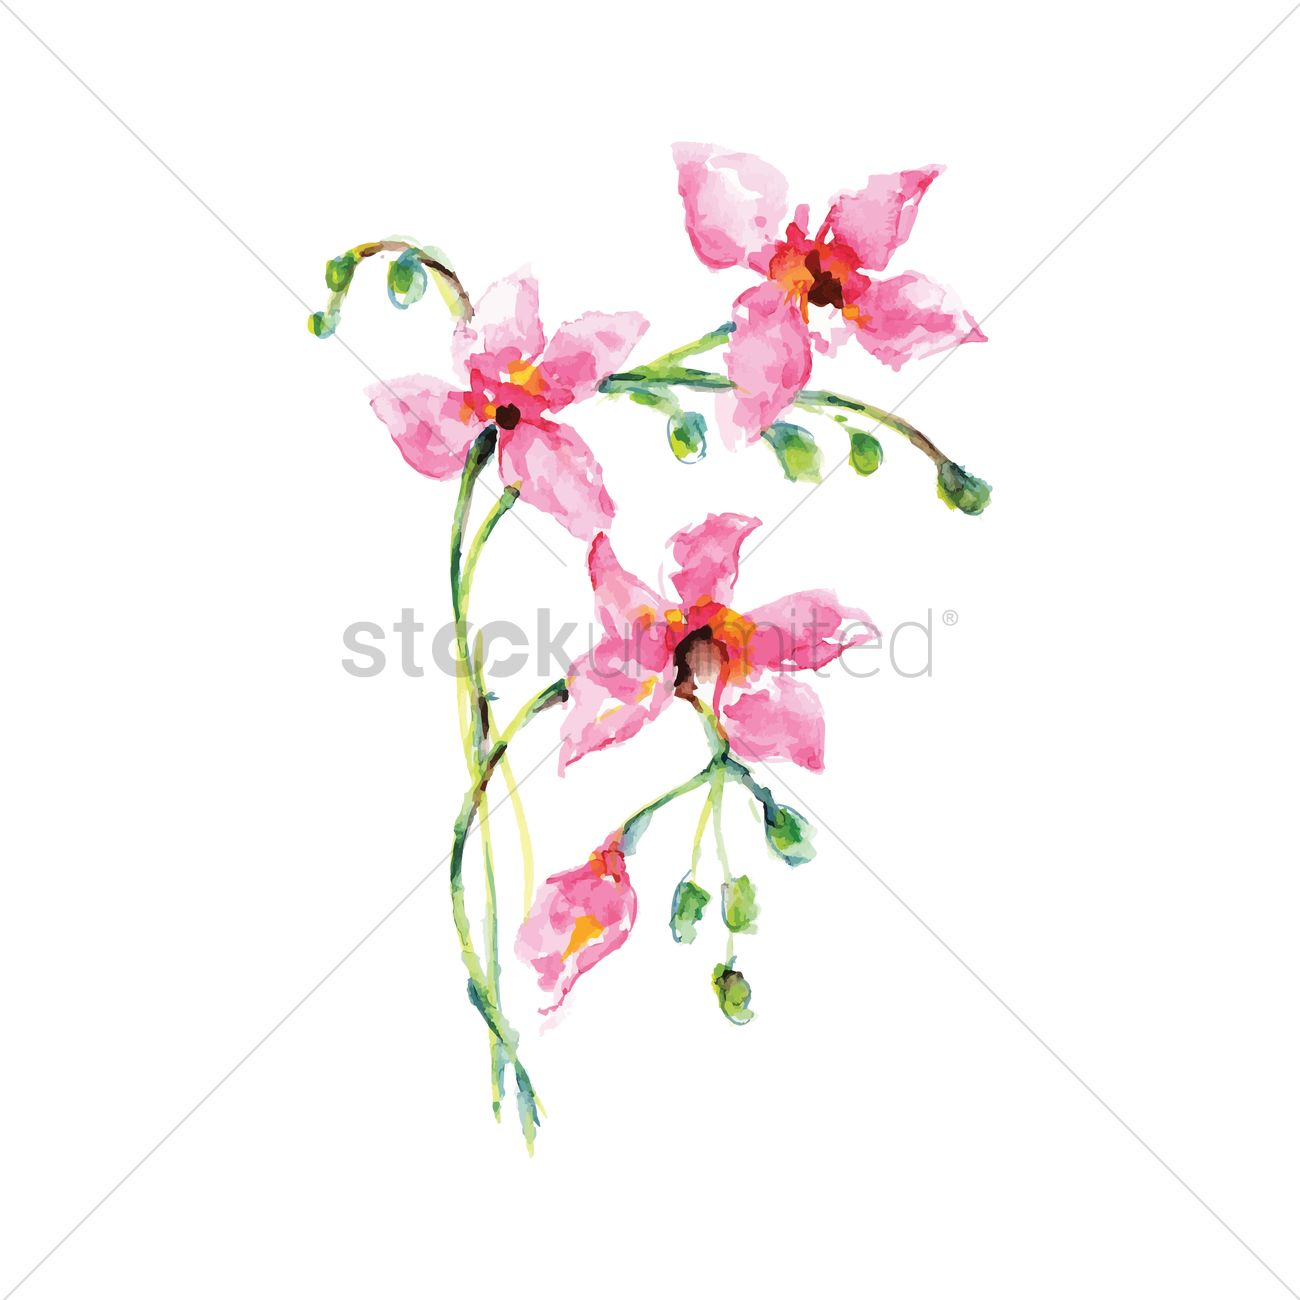 Bougainvillea svg #15, Download drawings